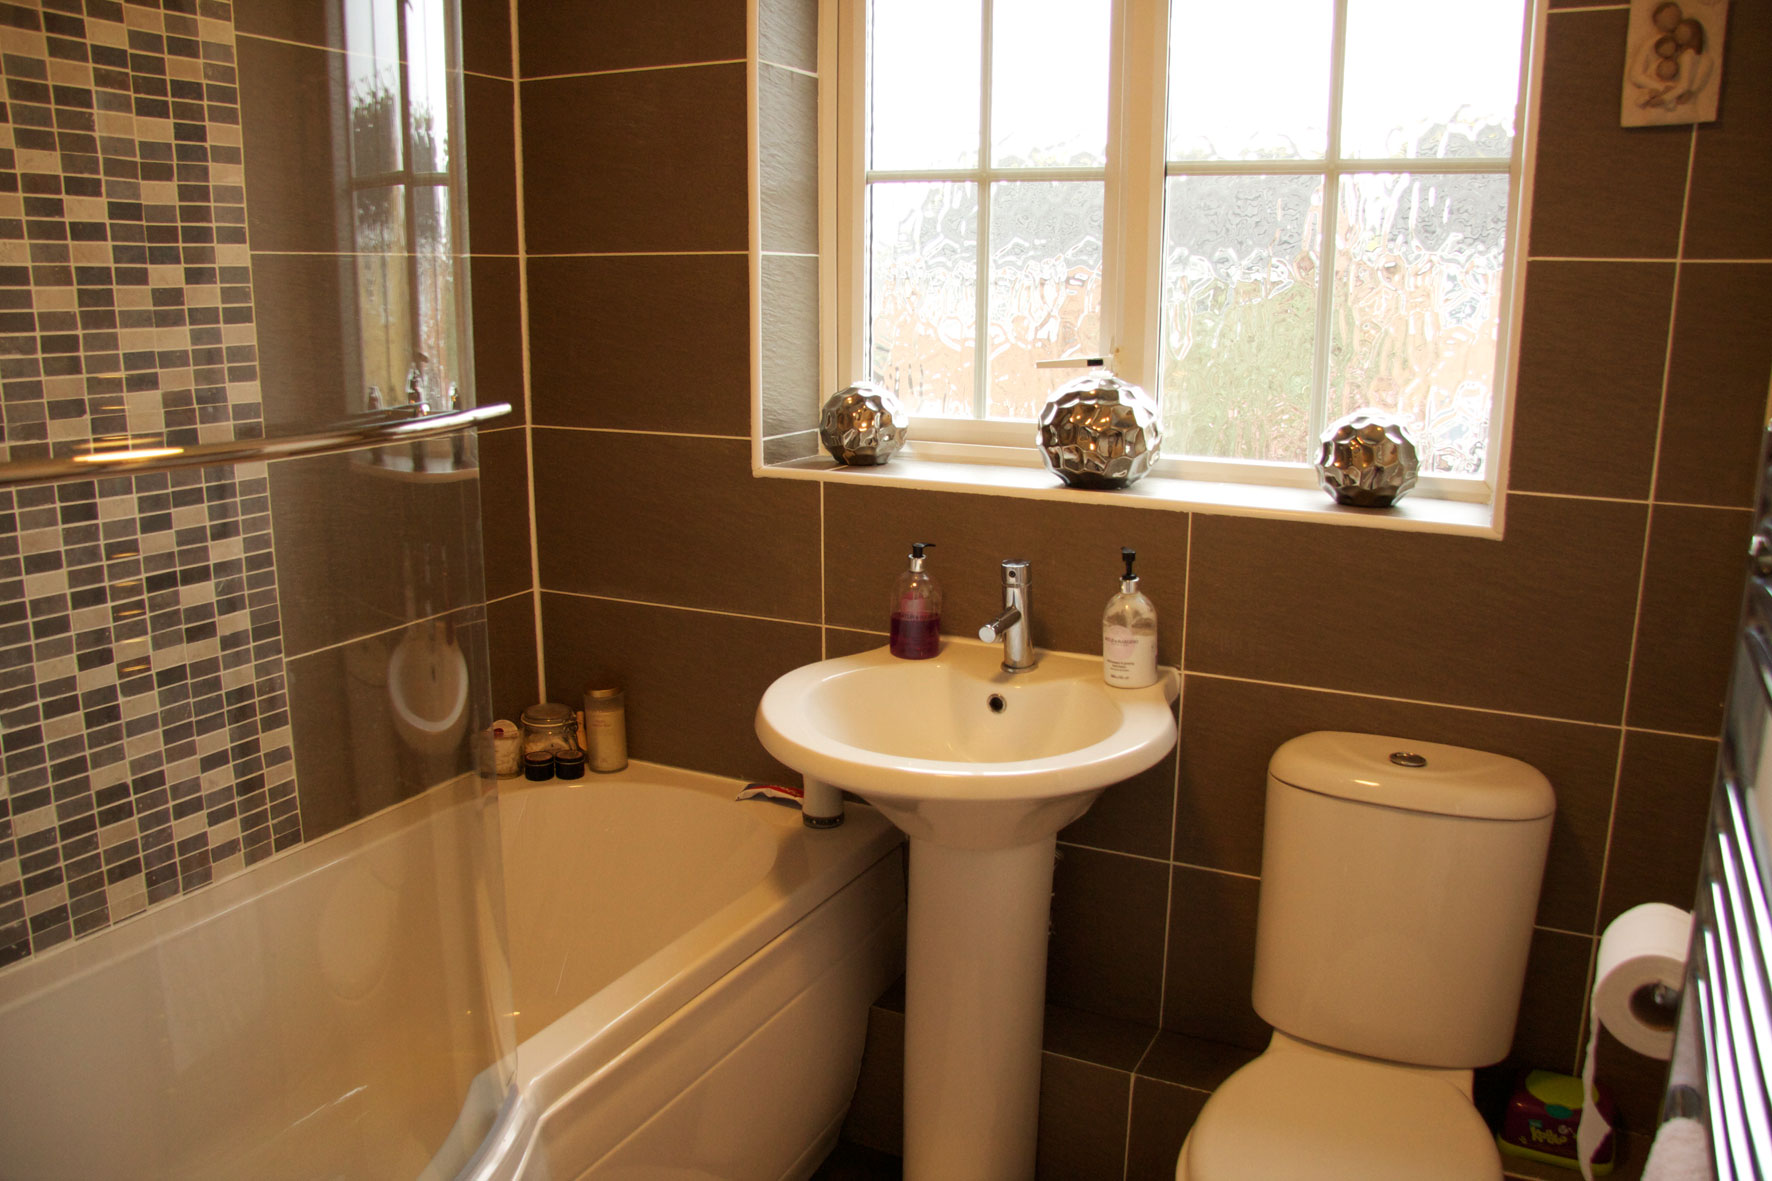 Work ac homeworks northampton based home improvements for Restroom tub